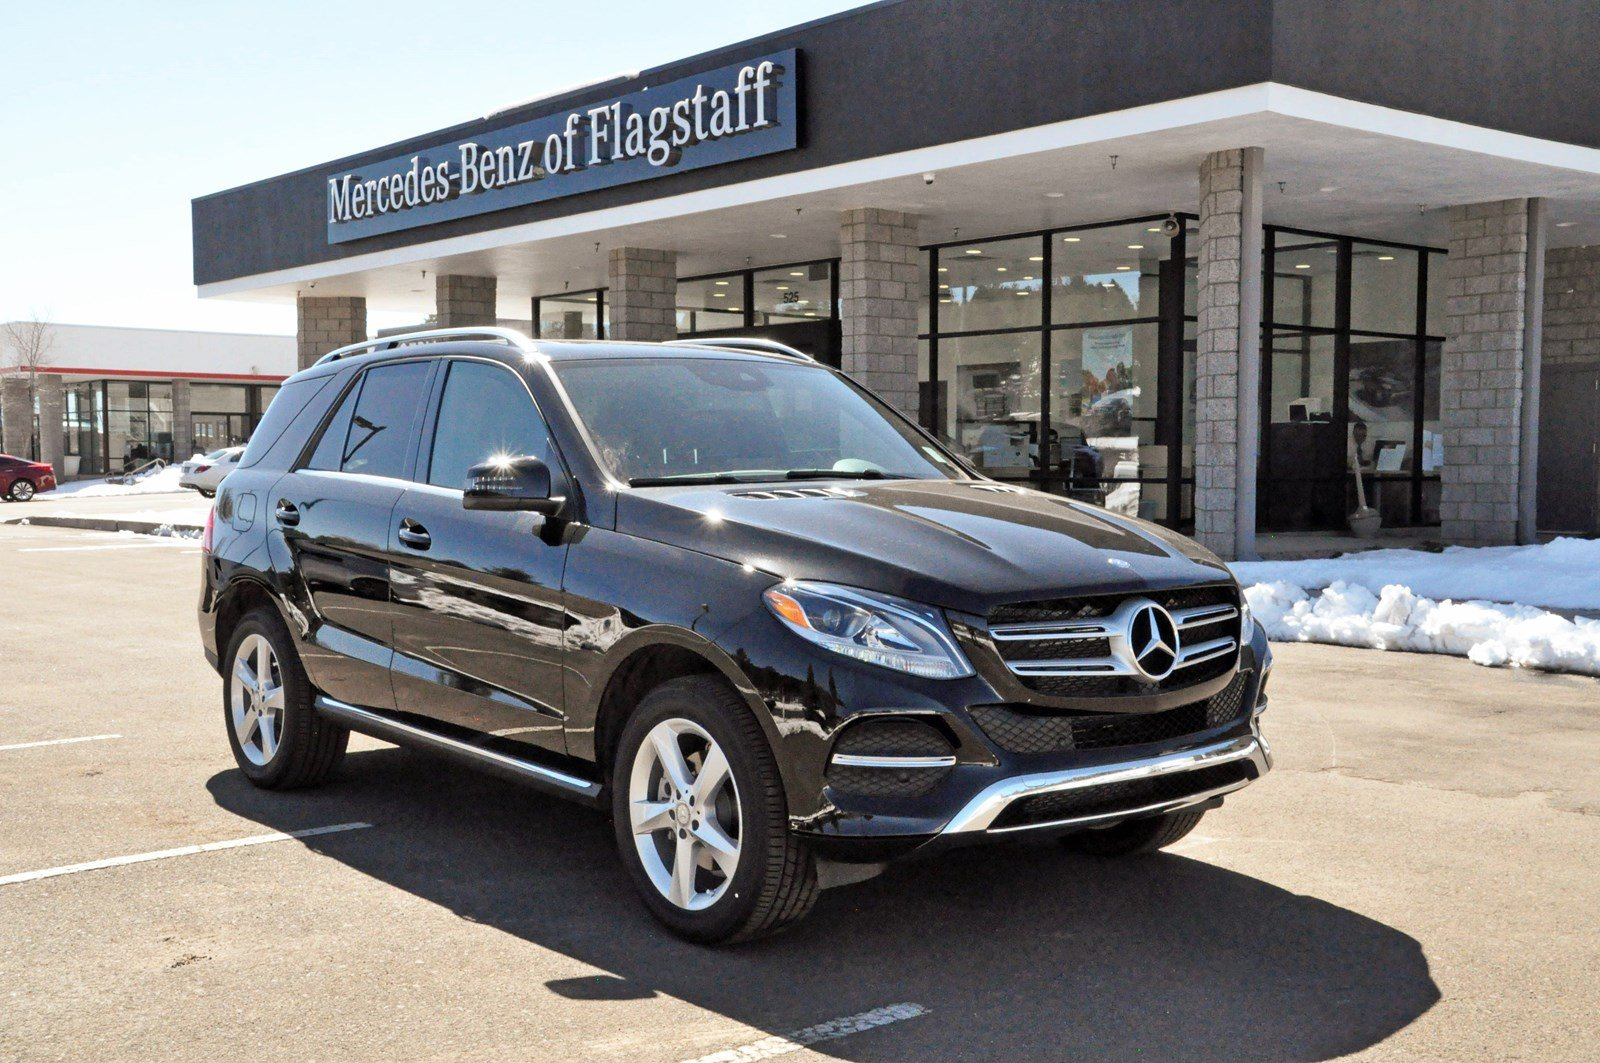 New 2017 mercedes benz gle gle 350 suv in flagstaff for Mercedes benz of flagstaff